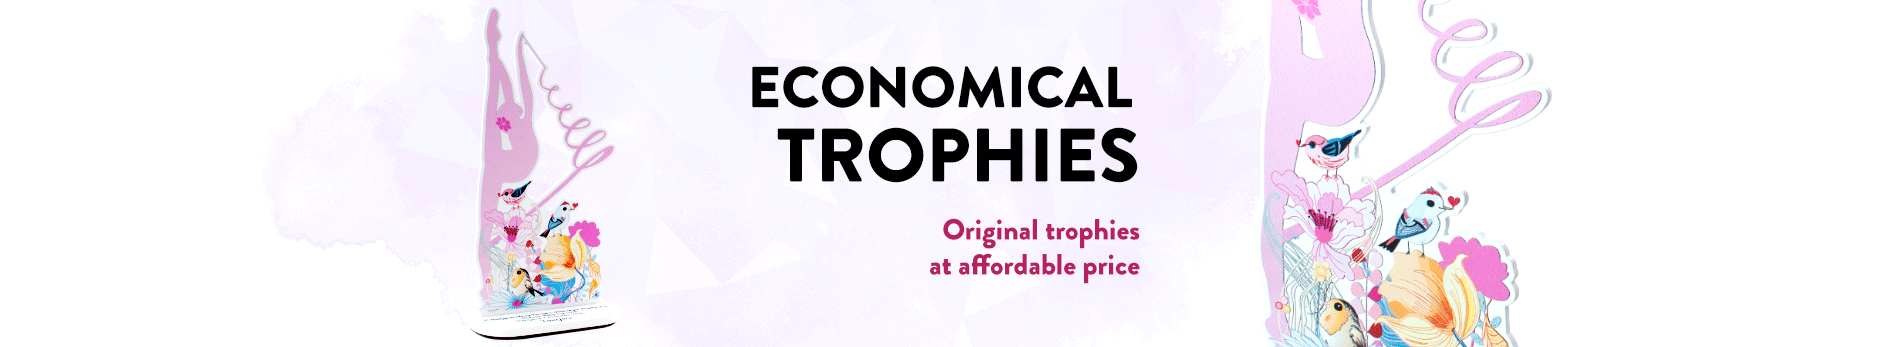 Economical trophies